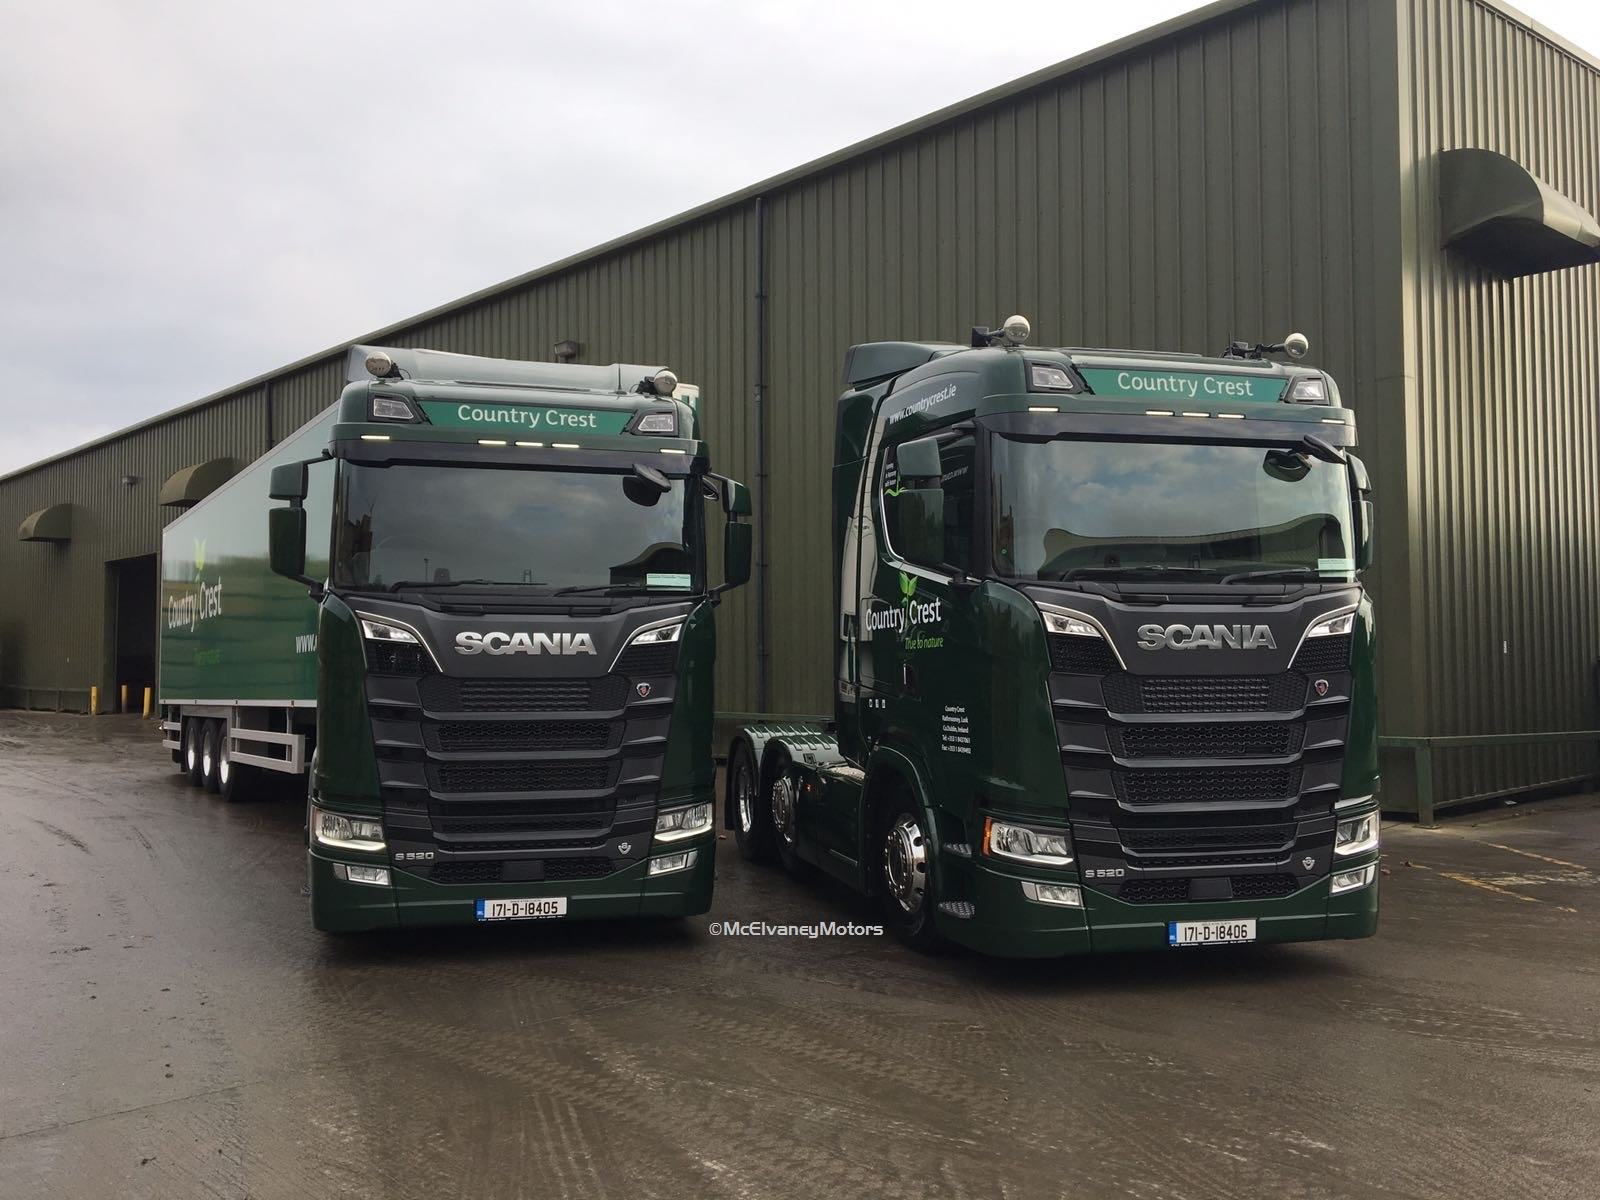 Two New Generation S520s for Country Crest